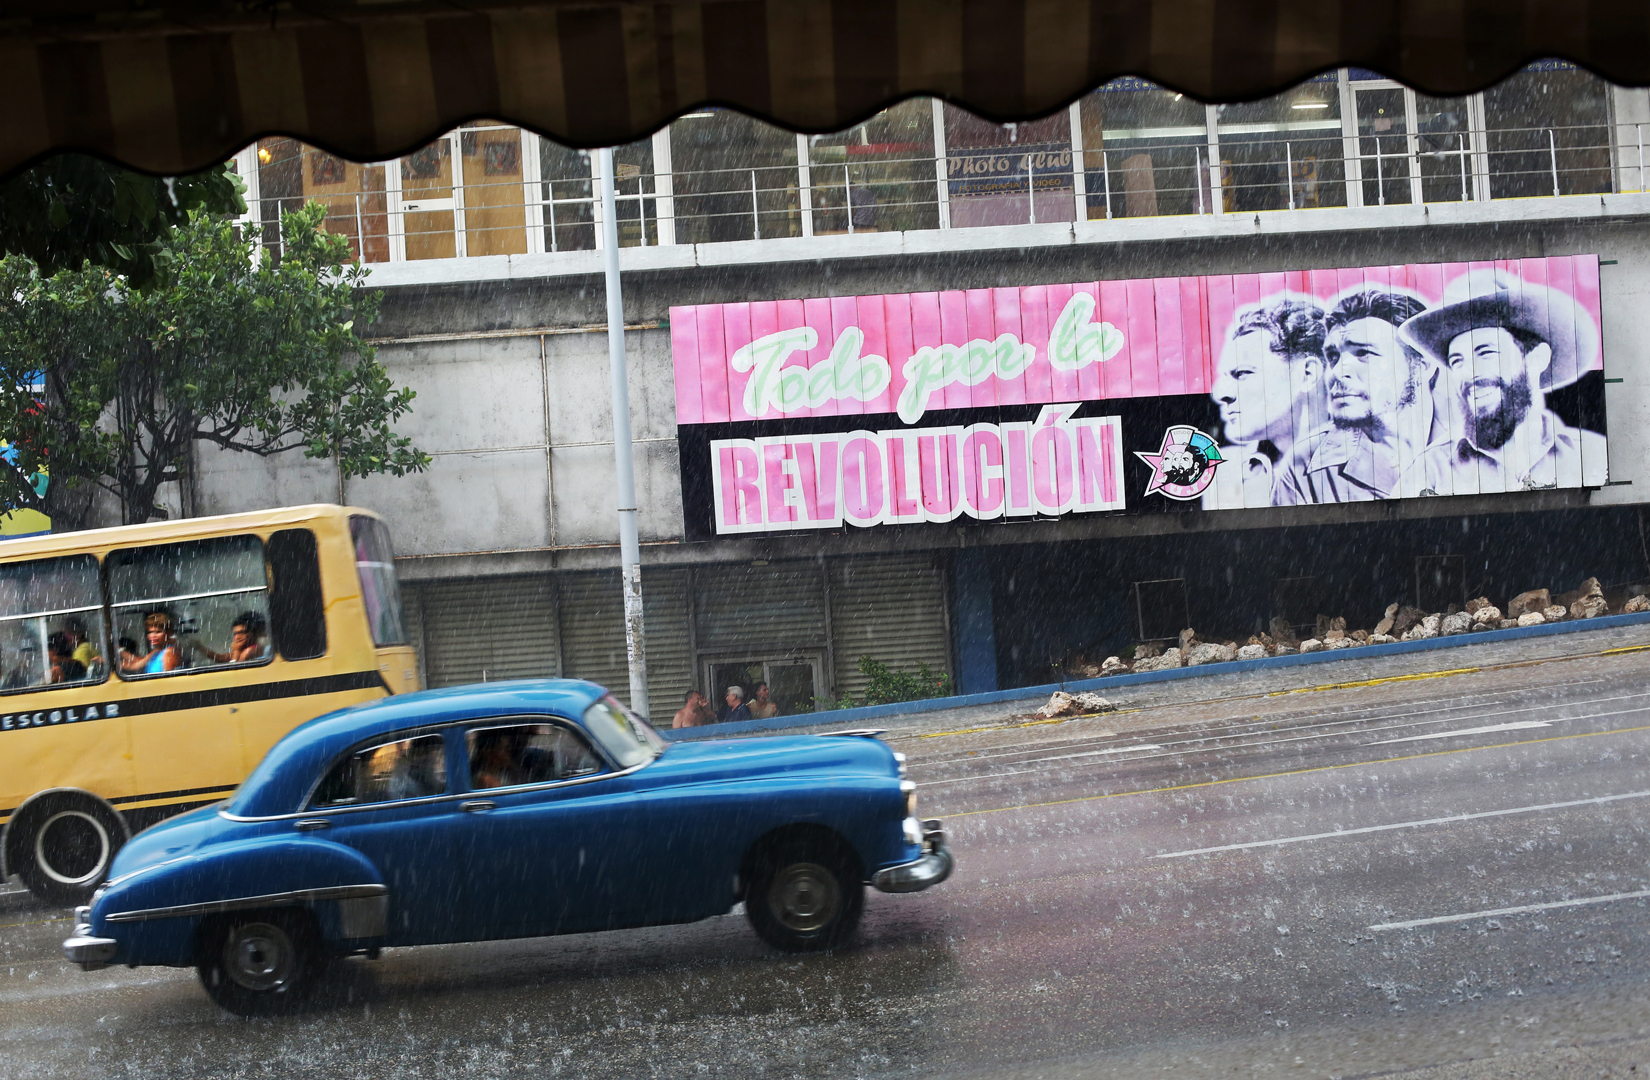 I grew up in a world almost completely clean of advertisement. It was unnecessary in pre-1989 Bulgaria: private enterprise was forbidden, eliminating retailer and manufacturer competition on production of a very limited supply of goods, that few people could afford anyway. Although entrepreneurship exists both legally and illegally on the vast government-owned landscape of Cuba, payroll taxes that increase disproportionately with the rise of annual profit discourage its expansion. Propaganda fills the space that consumerism leaves on this Havana street (a famously ubiquitous sight across the nation.) A sign for the Young Communist League (Unión de Jóvenes Comunistas,) reading {quote}Everything for the Revolution,{quote} stretches across a billboard next to the organization's motto {quote}Estudio, Trabajo, Fusil{quote} ({quote}Study, Work, Rifle,{quote}) and the likes of Cuban revolutionaries Julio Antonio Mella, Che Guevara and Camilo Cienfuegos. While the organization's membership is voluntary (and selective - based on a clean record of pro-government views,) it is highly encouraged for social and professional success.